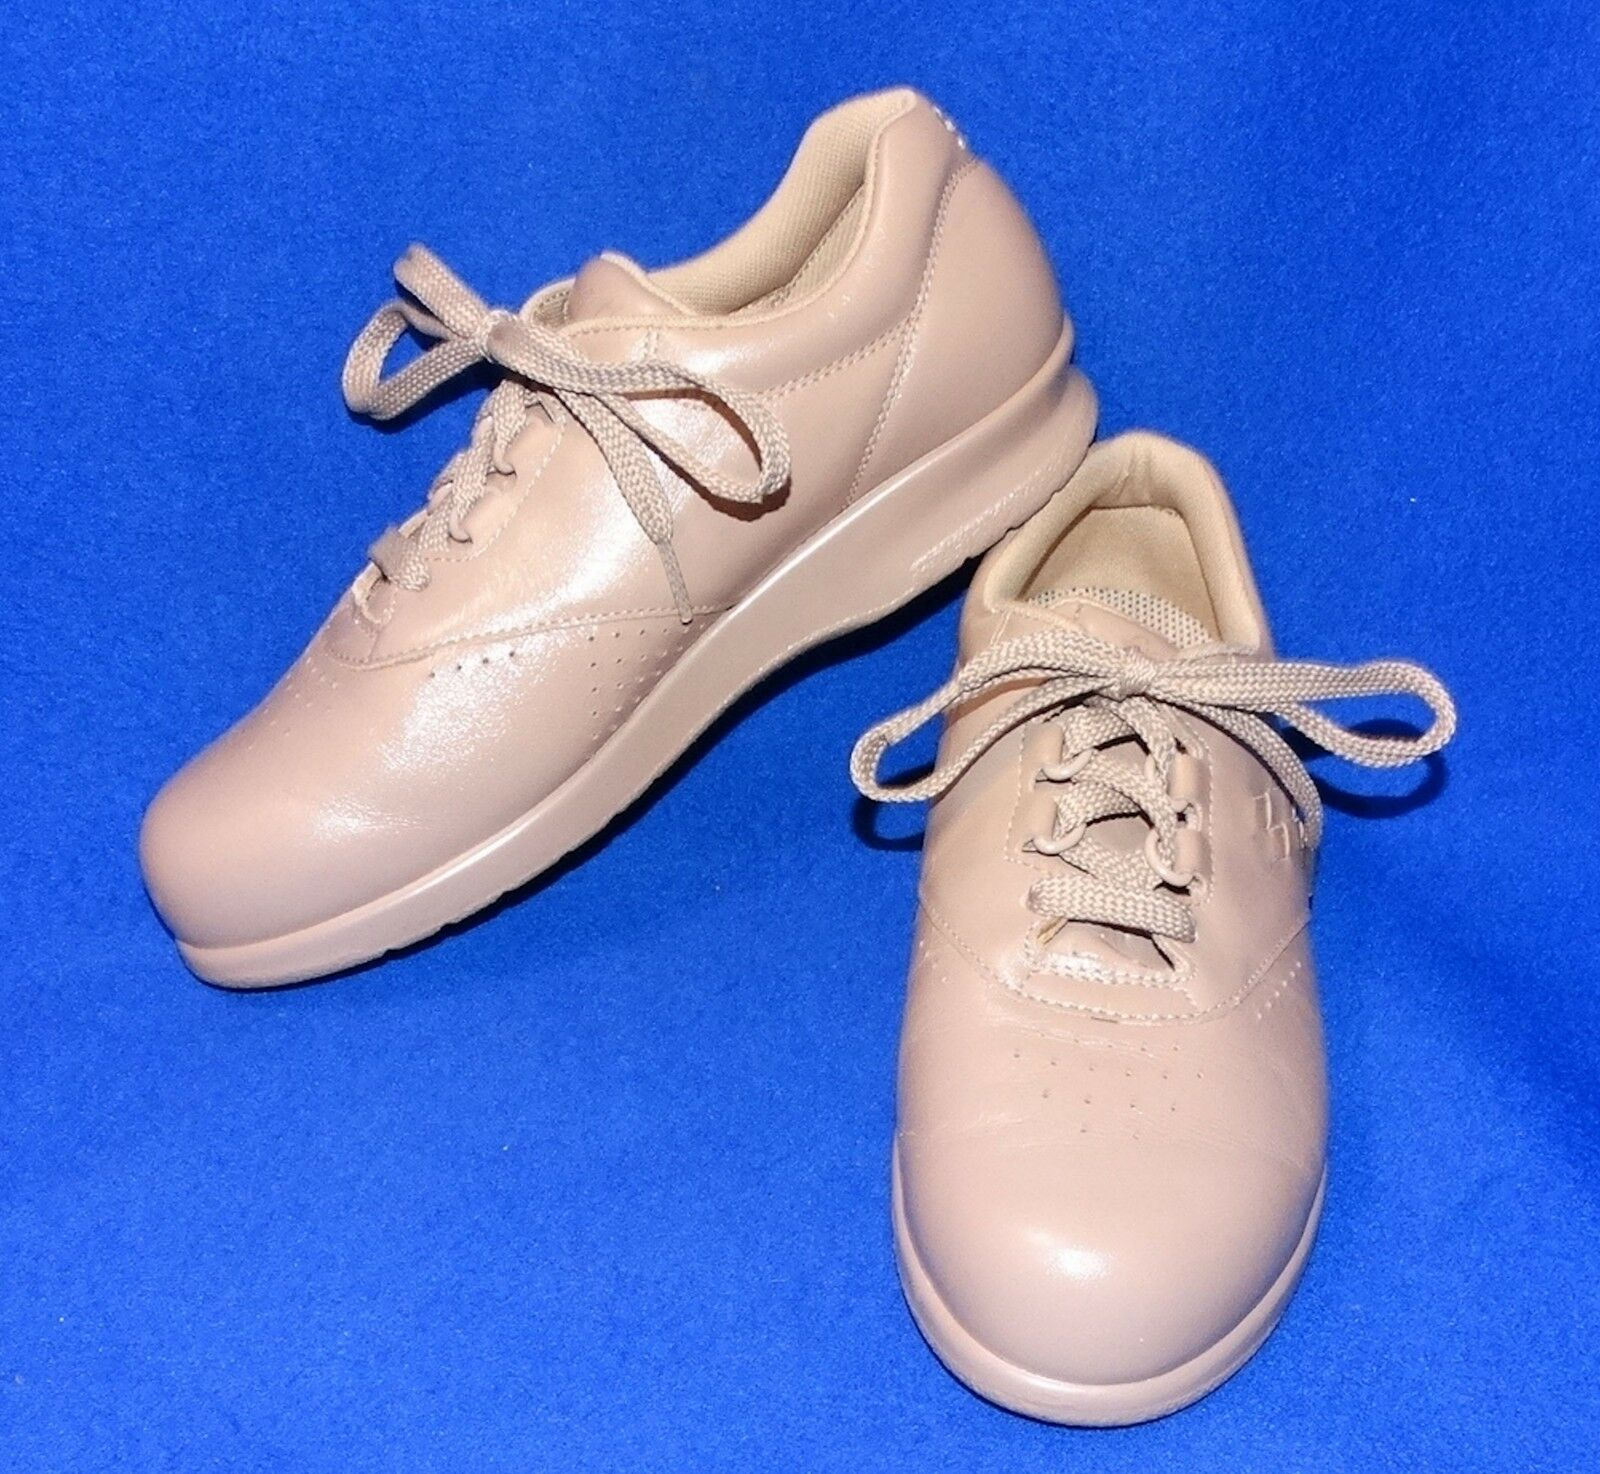 NEAR MINT 5.5 M SAS TAN TAUPE FREE TIME WOMENS COMFORT SHOES